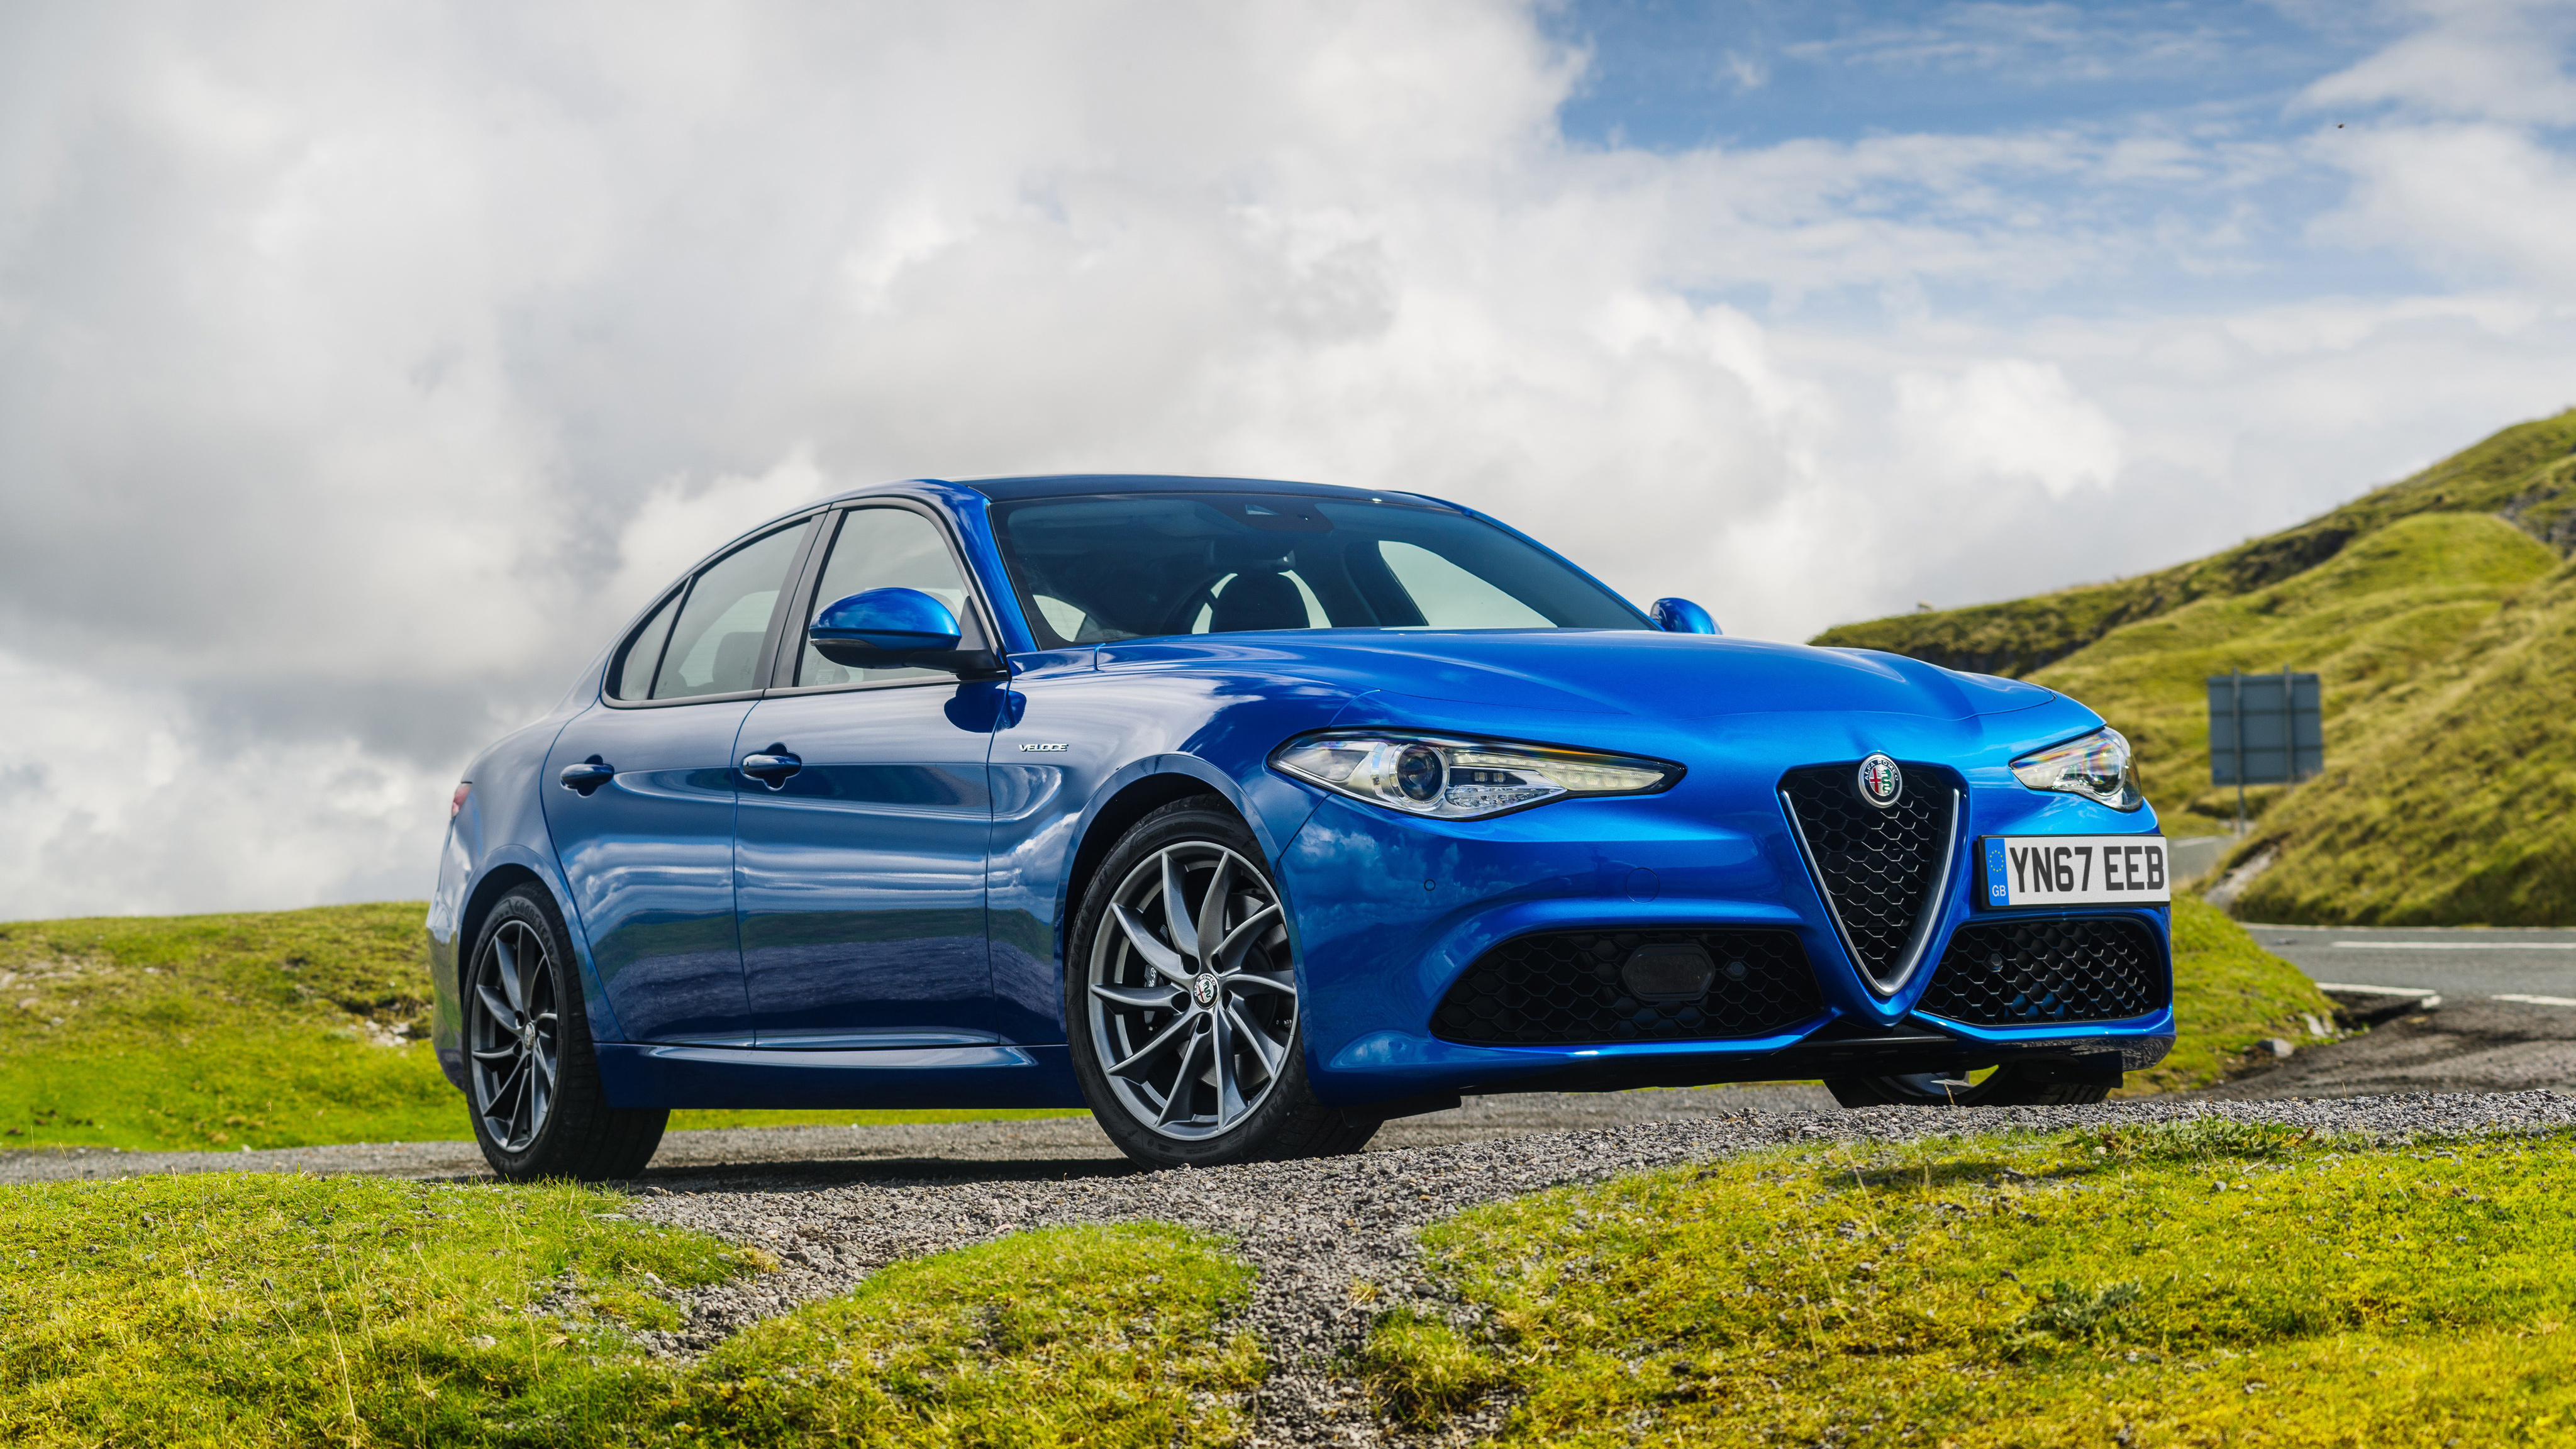 2017 alfa romeo giulia veloce 4k wallpaper hd car wallpapers. Black Bedroom Furniture Sets. Home Design Ideas